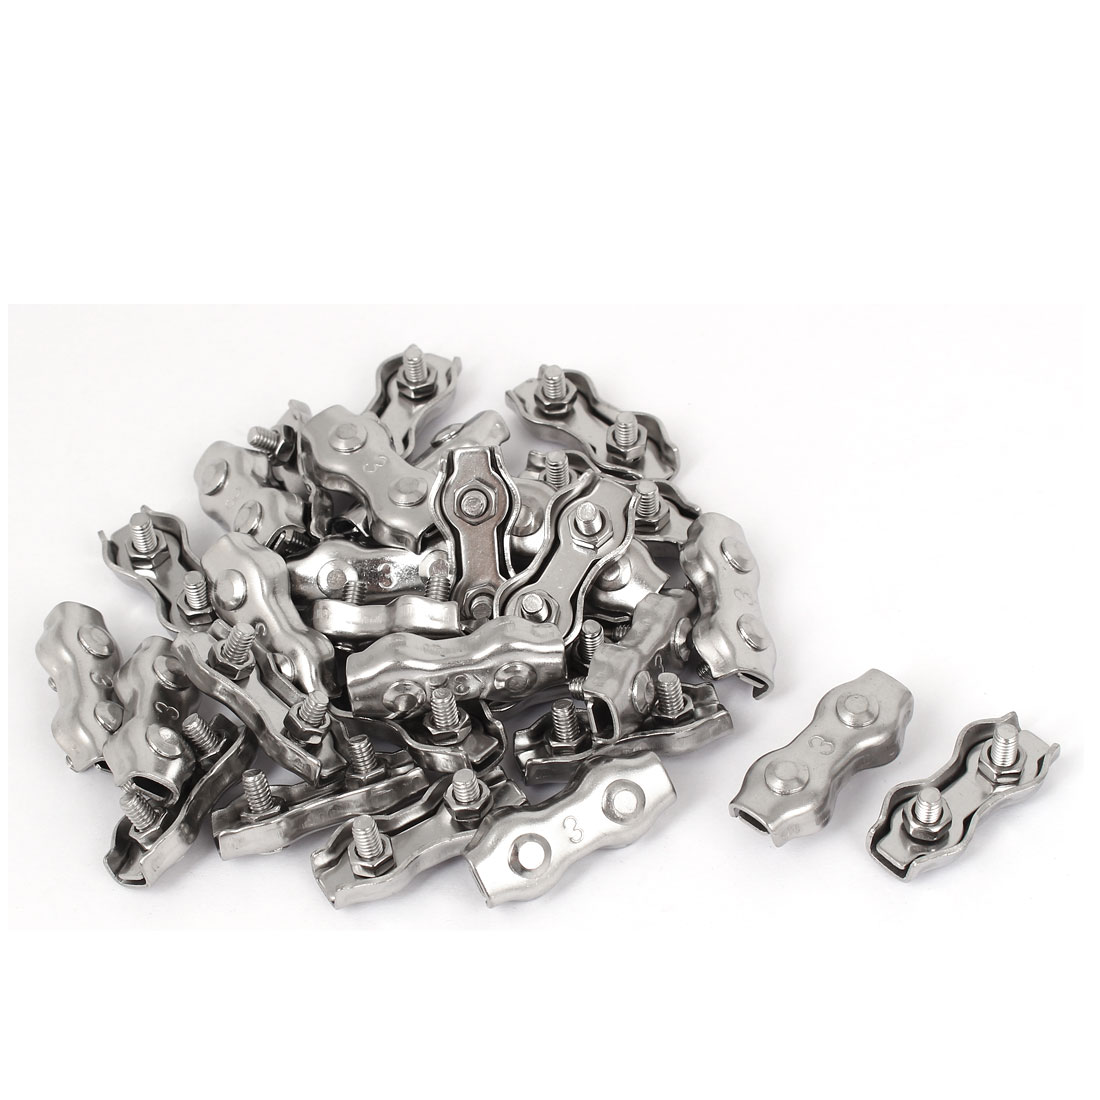 M3 Stainless Steel Duplex 2-Post Wire Rope Clip Cable Clamp 30 Pcs